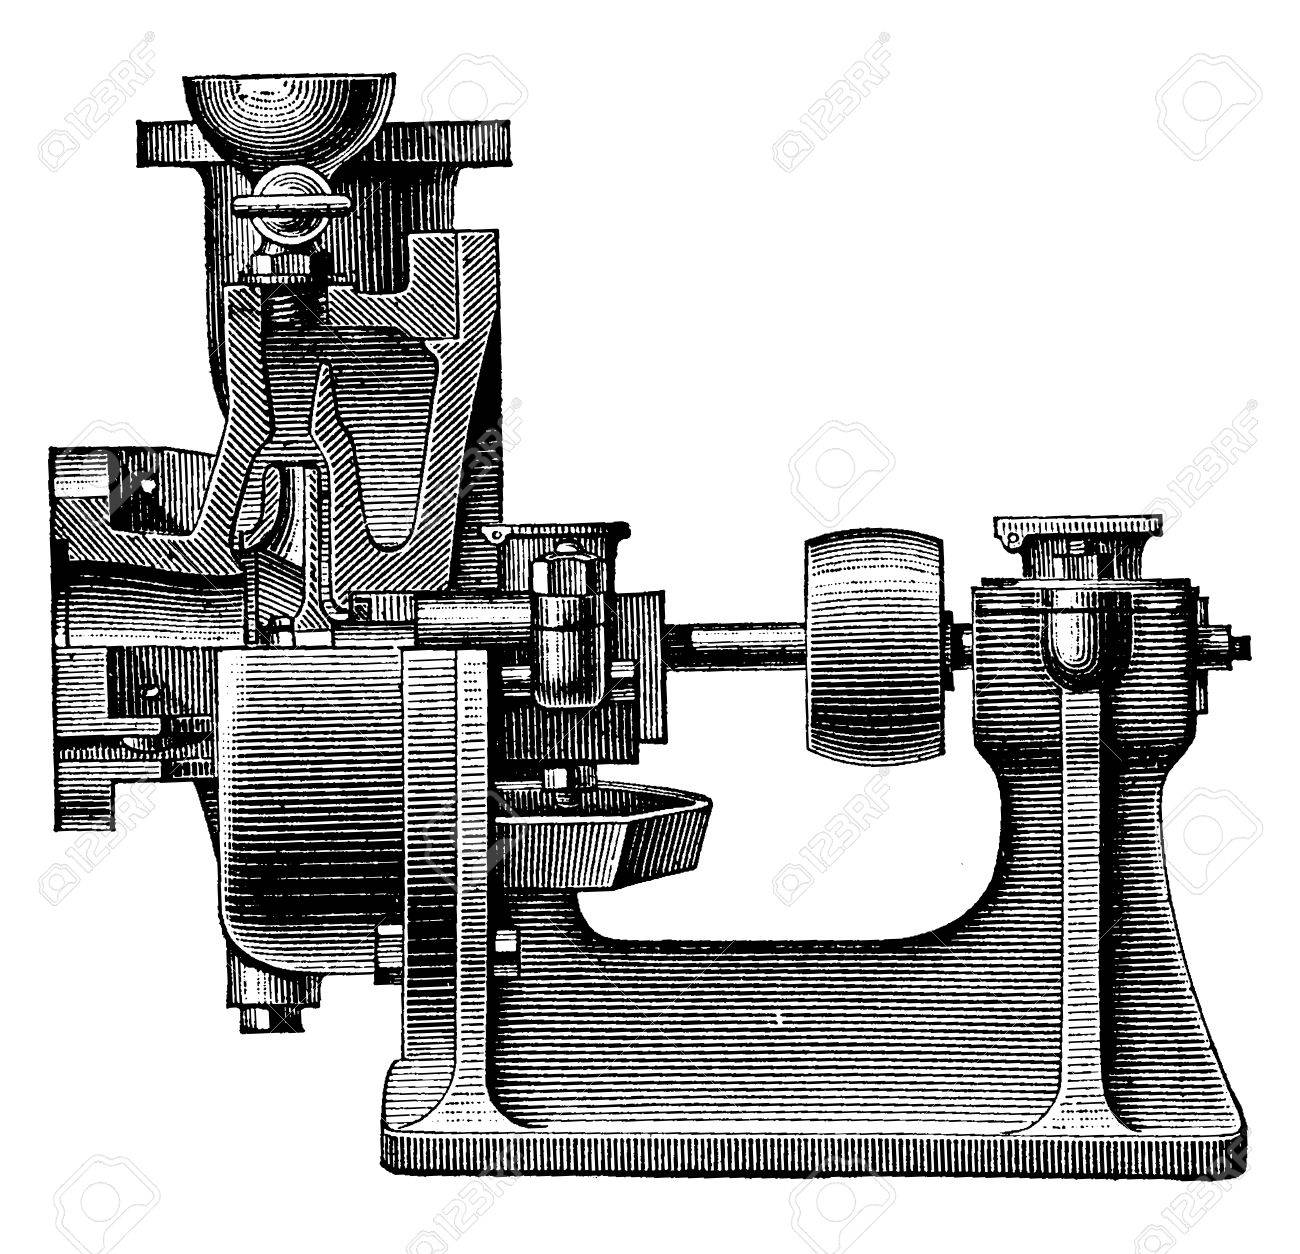 Heart centrifugal pump vintage engraved illustration industrial heart centrifugal pump vintage engraved illustration industrial encyclopedia e o lami ccuart Image collections